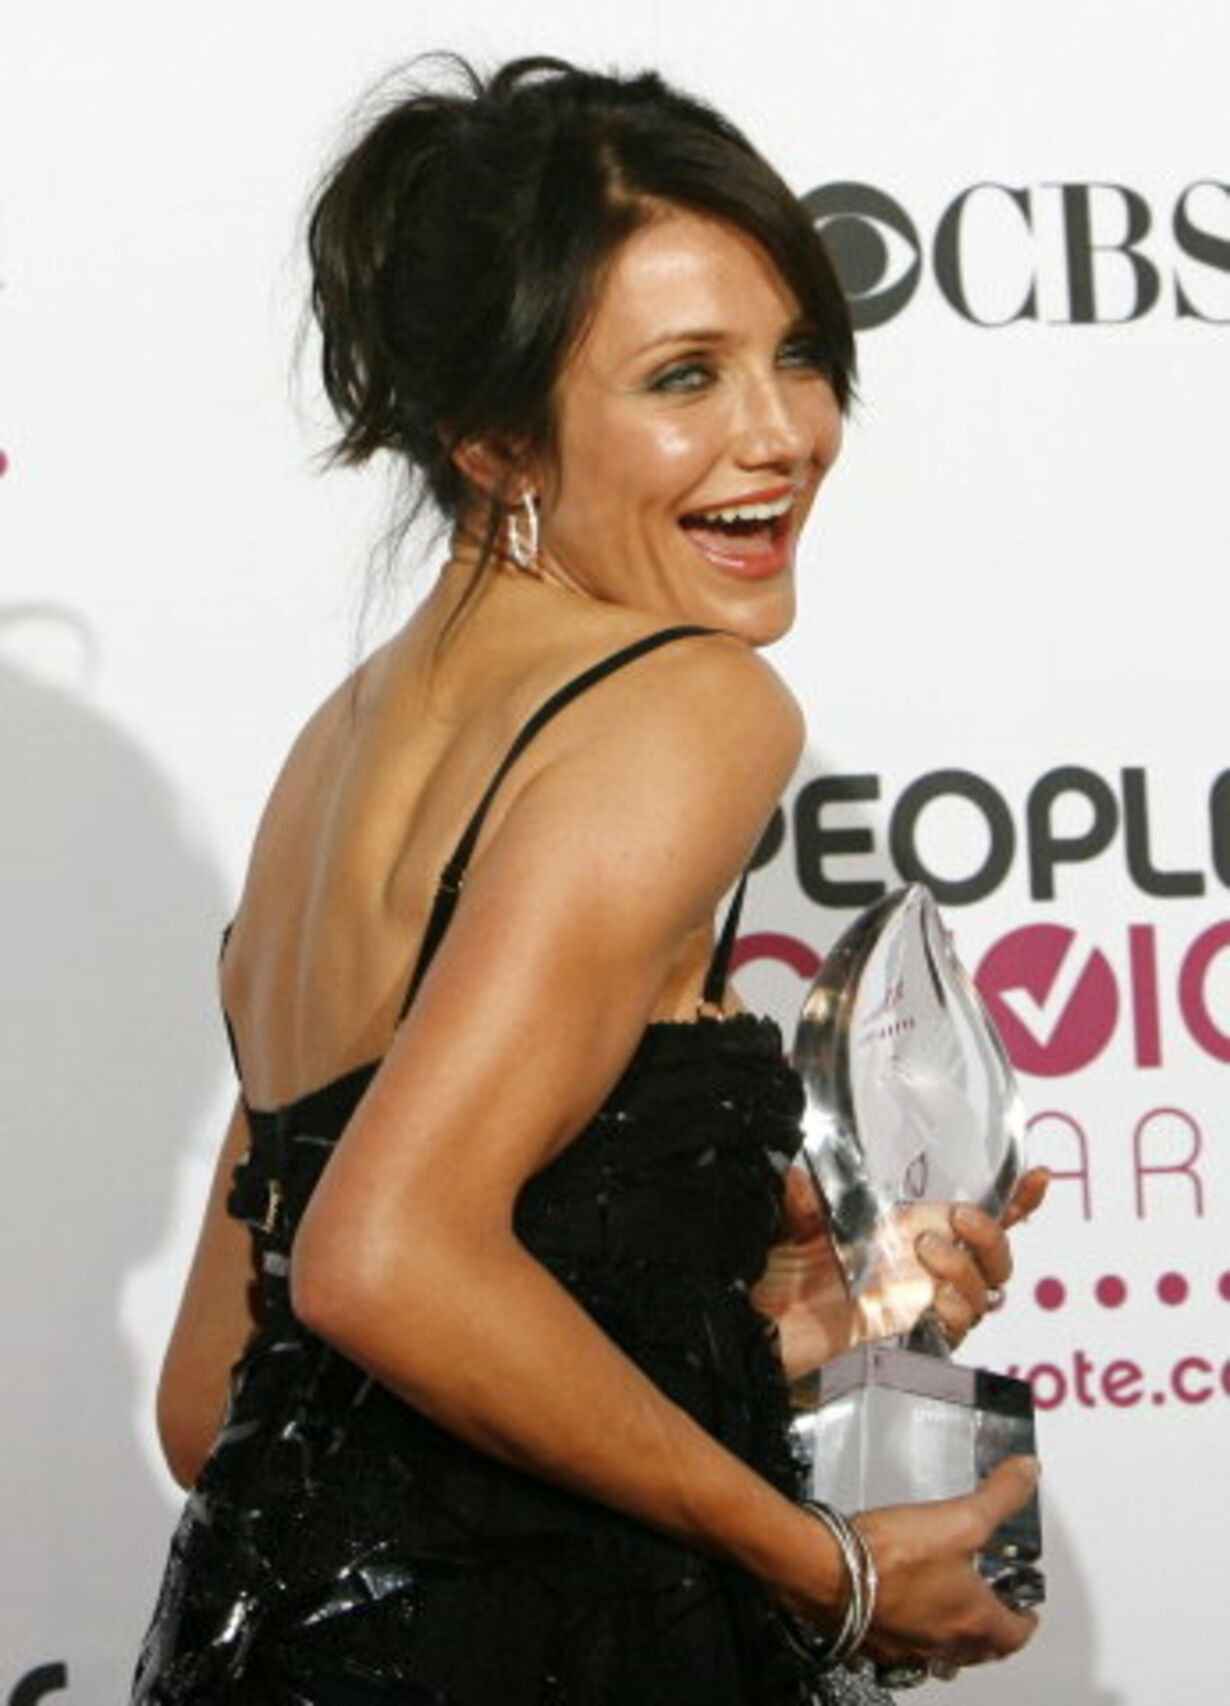 People's Choice Awards - 4